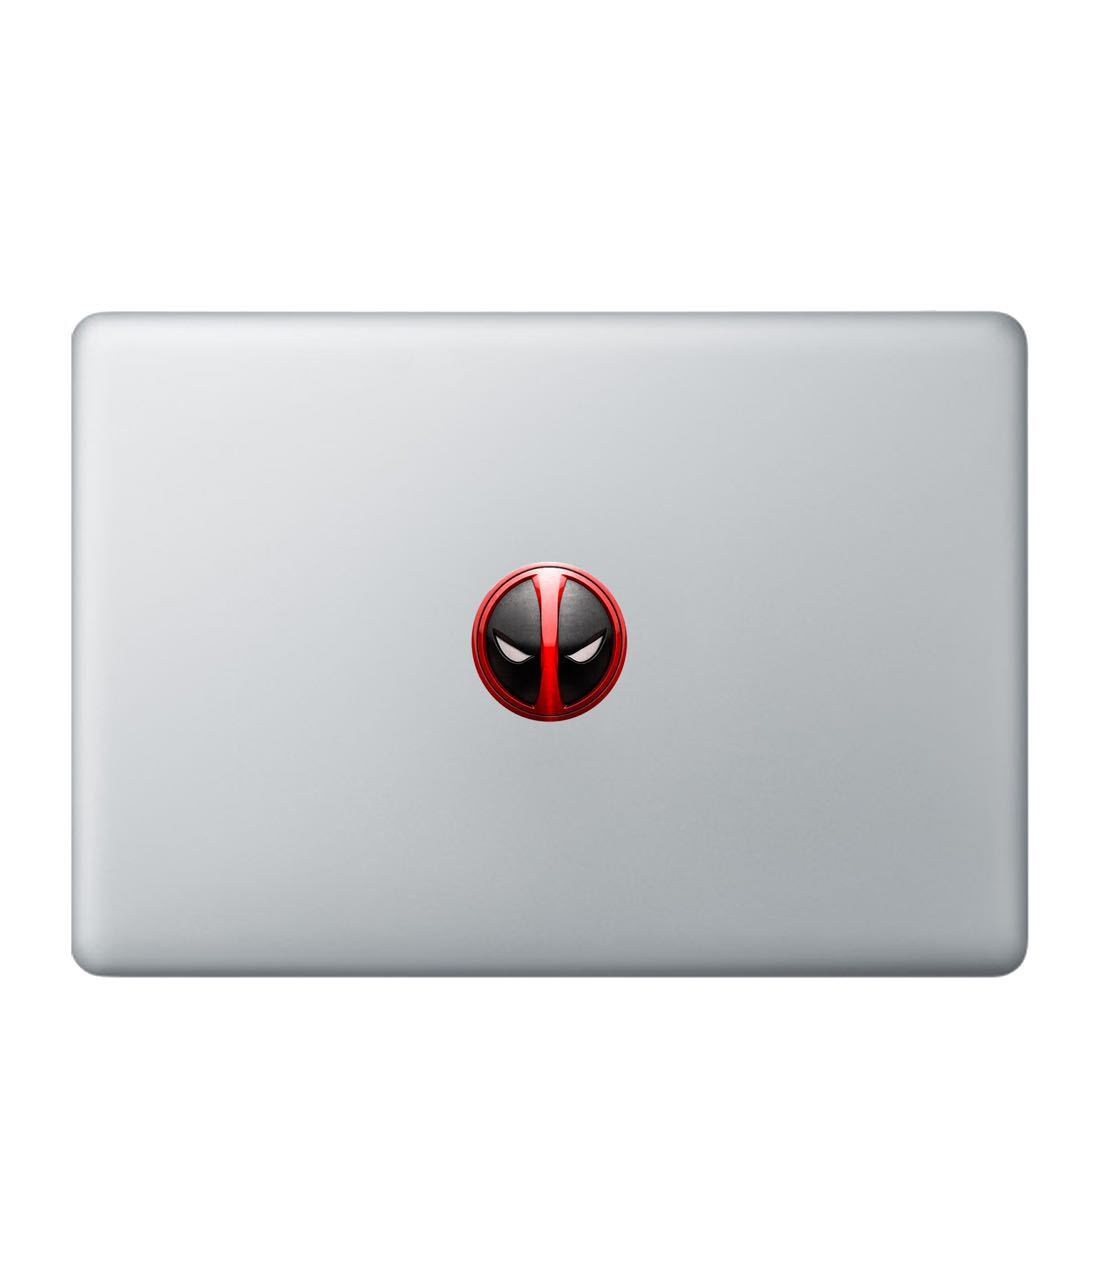 Minimalistic Deadpool Laptop Decal by Macmerise -Macmerise - India - www.superherotoystore.com